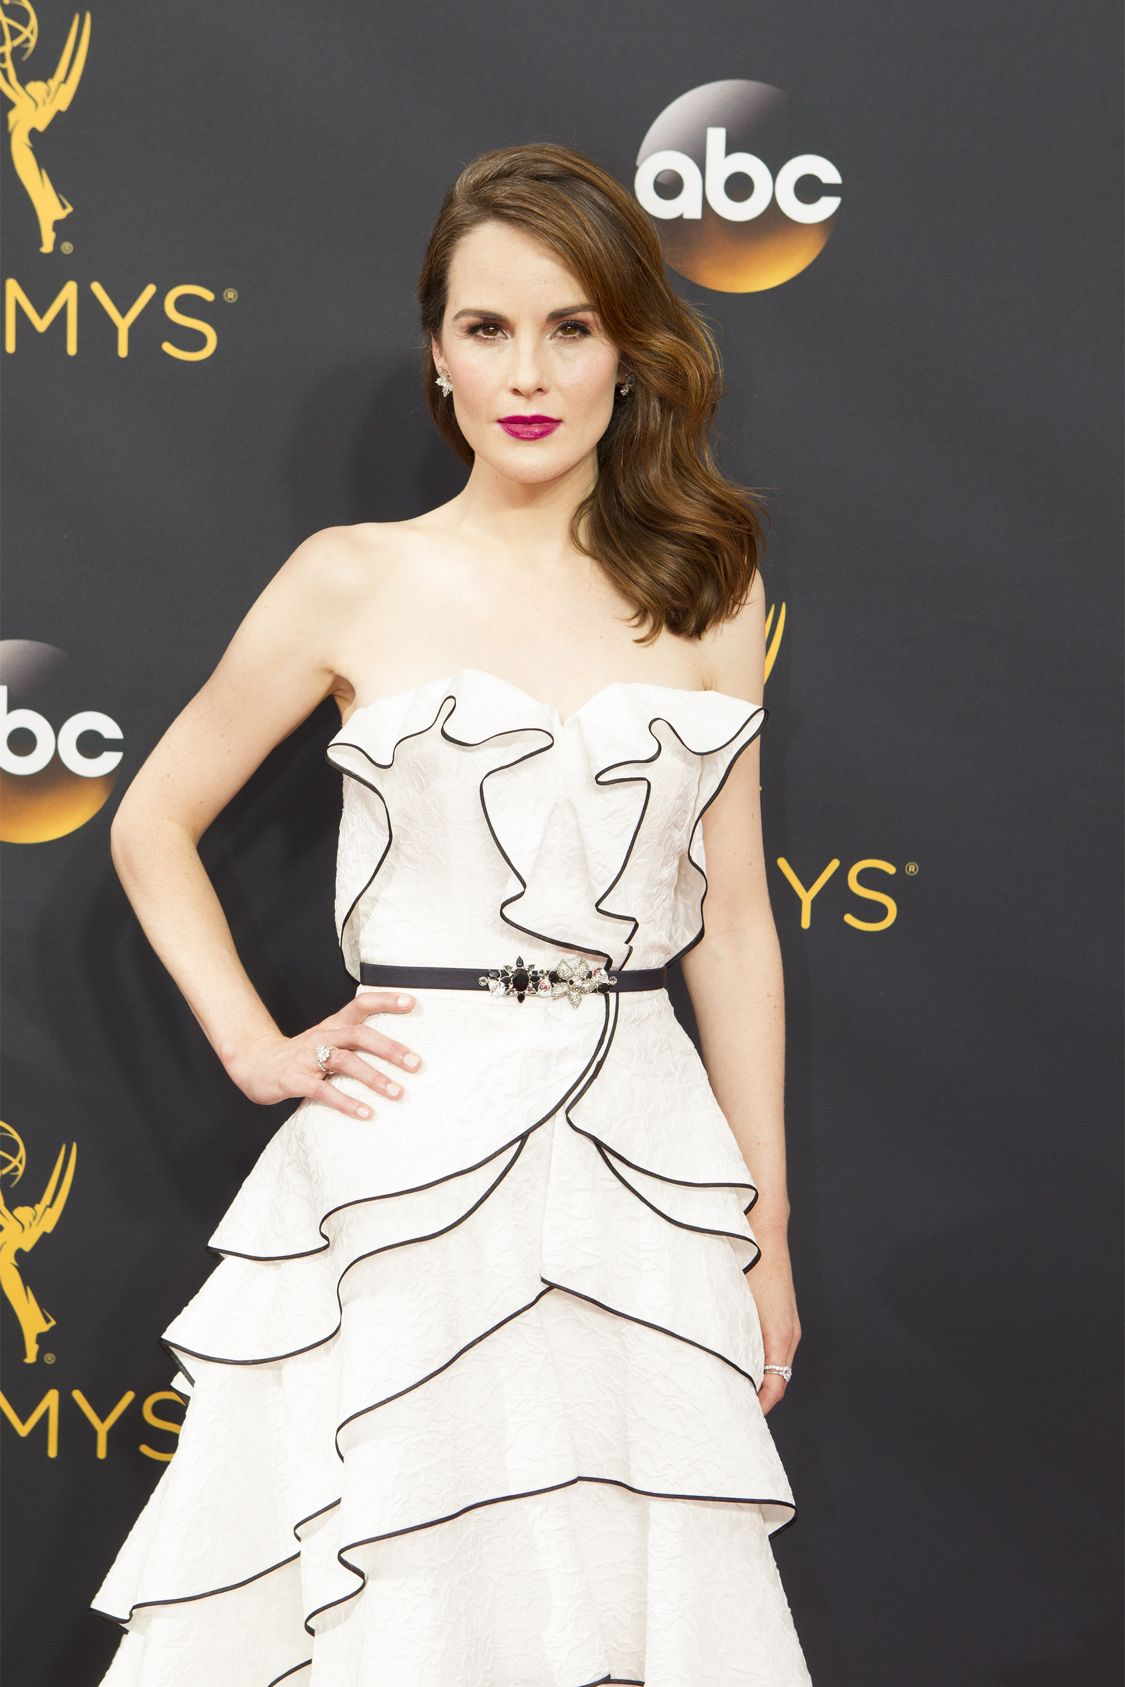 """THE 68TH EMMY(r) AWARDS - """"The 68th Emmy Awards"""" broadcasts live from The Microsoft Theater in Los Angeles, Sunday, September 18 (7:00-11:00 p.m. EDT/4:00-8:00 p.m. PDT), on ABC and is hosted by Jimmy Kimmel. (ABC/Rick Rowell) MICHELLE DOCKERY"""